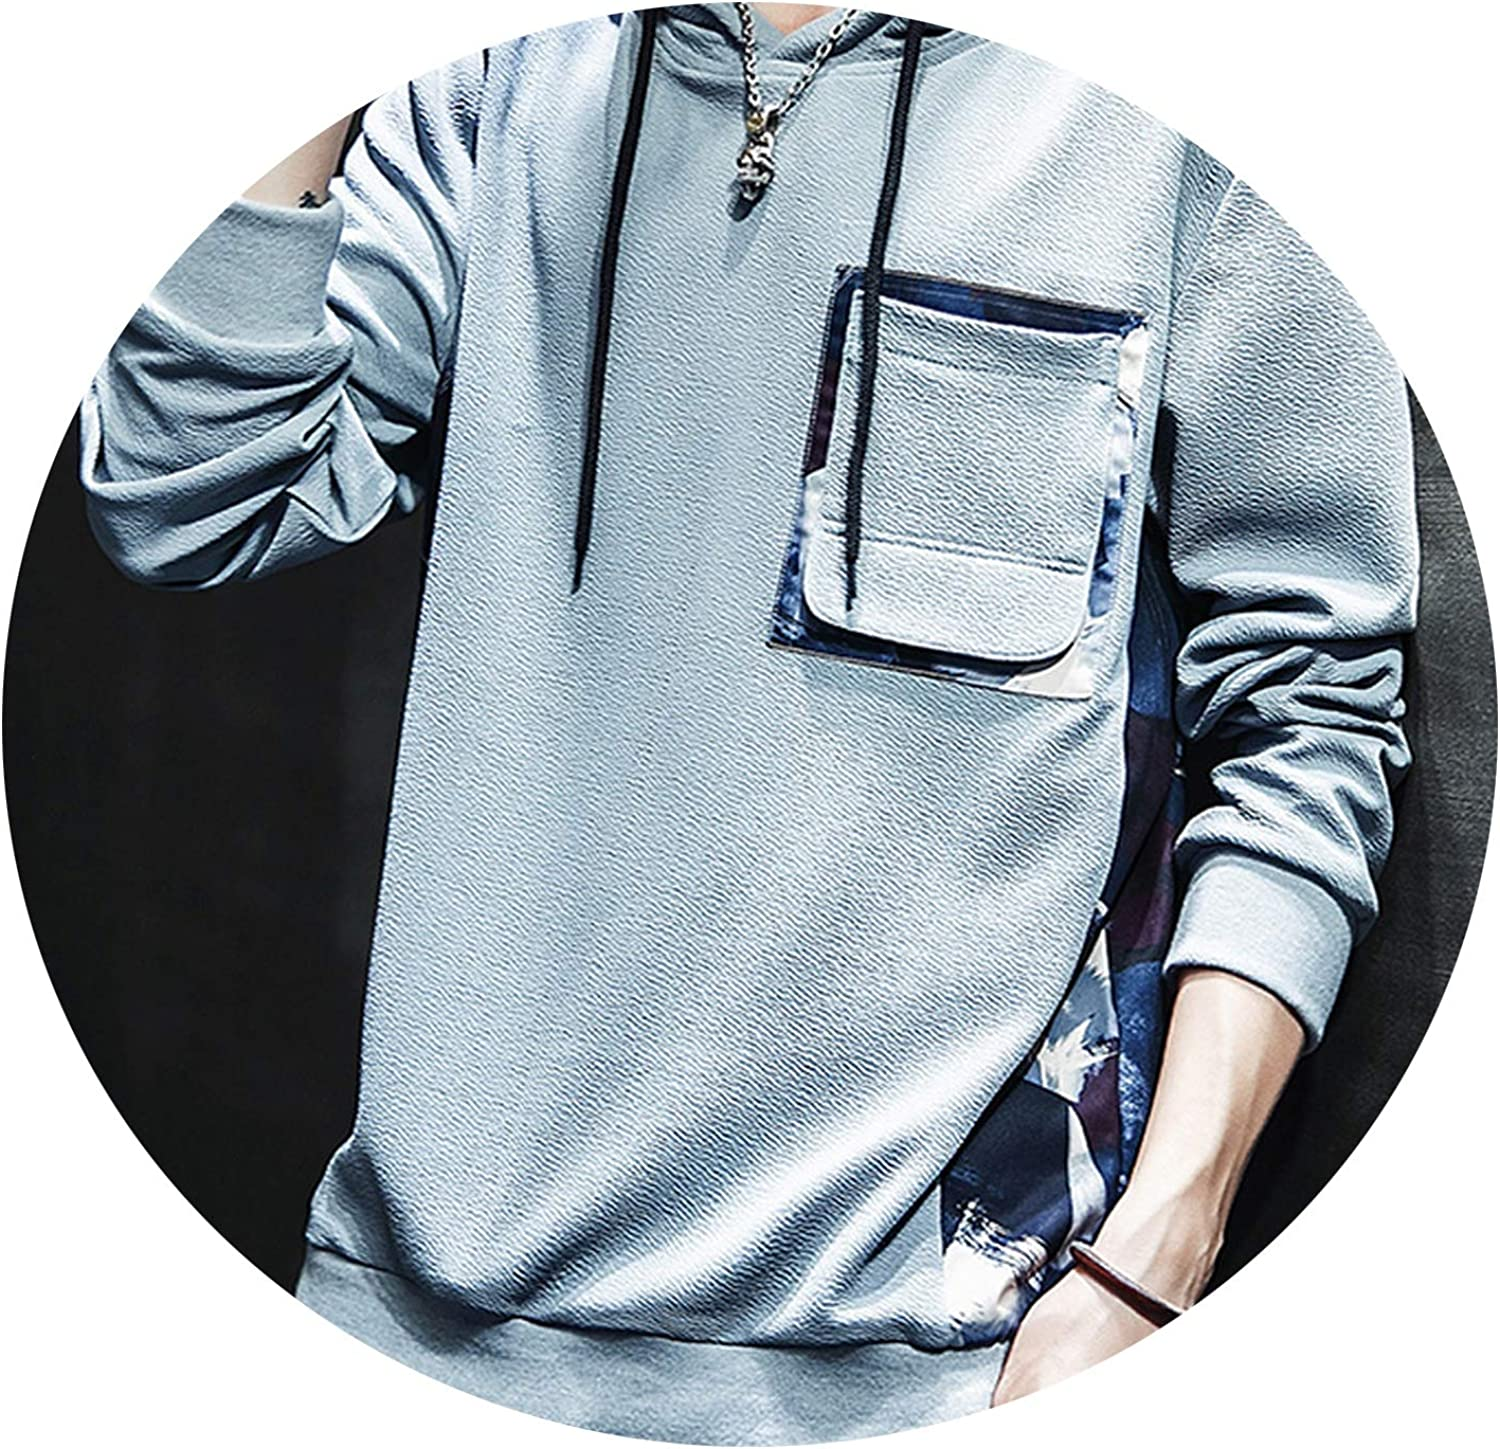 Fashion Hoodie Men Long Sleeved Round Neck Solid Color Tops Mens Hoodies